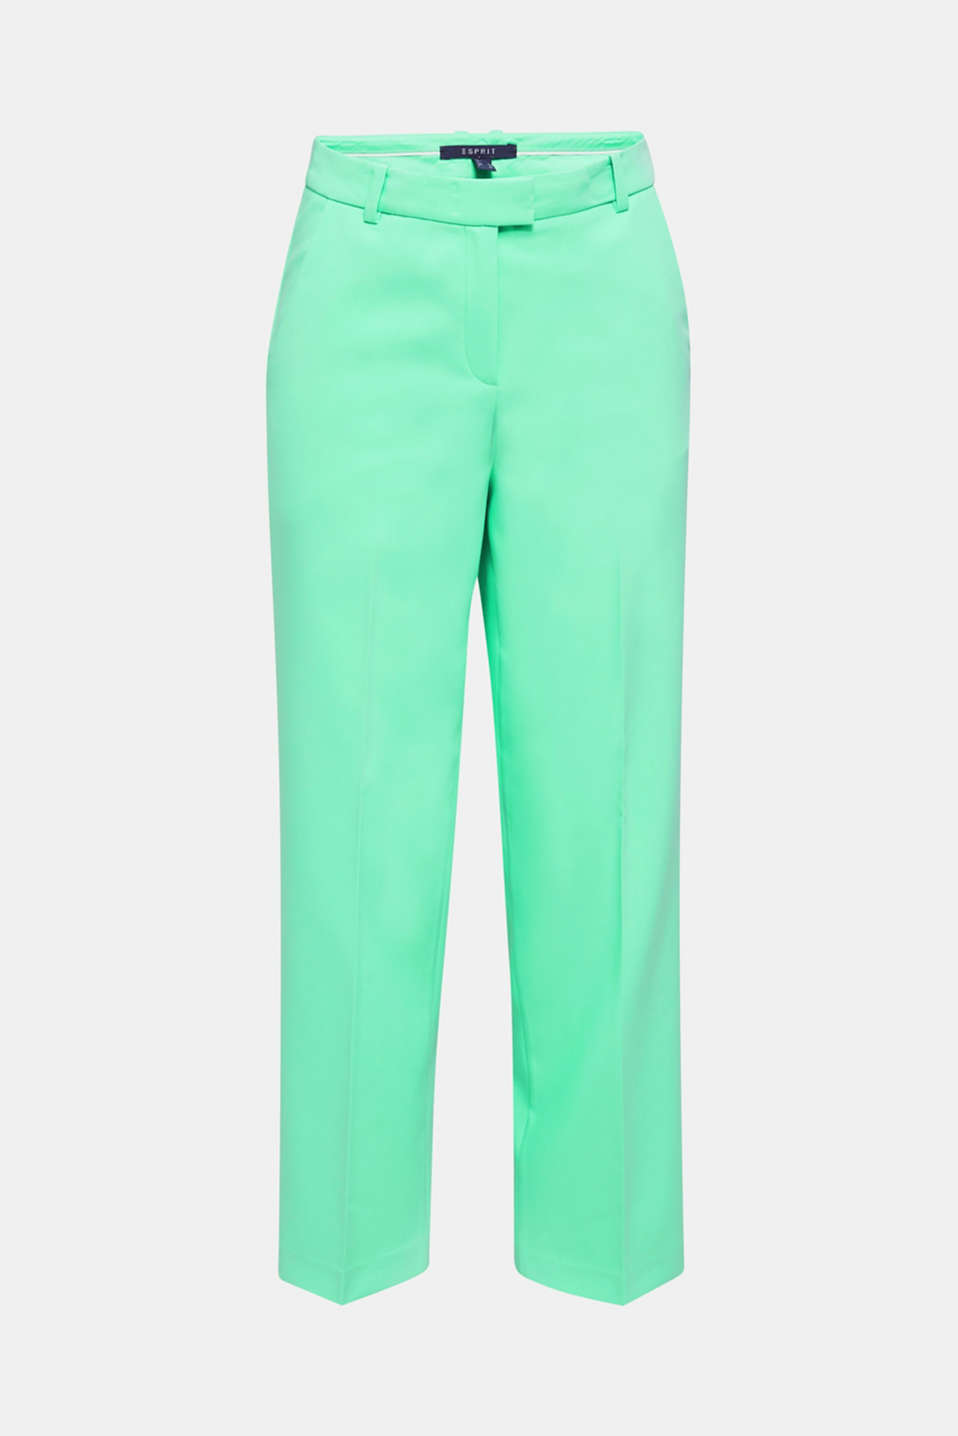 SHIMMER mix + match stretch trousers, LIGHT GREEN, detail image number 5